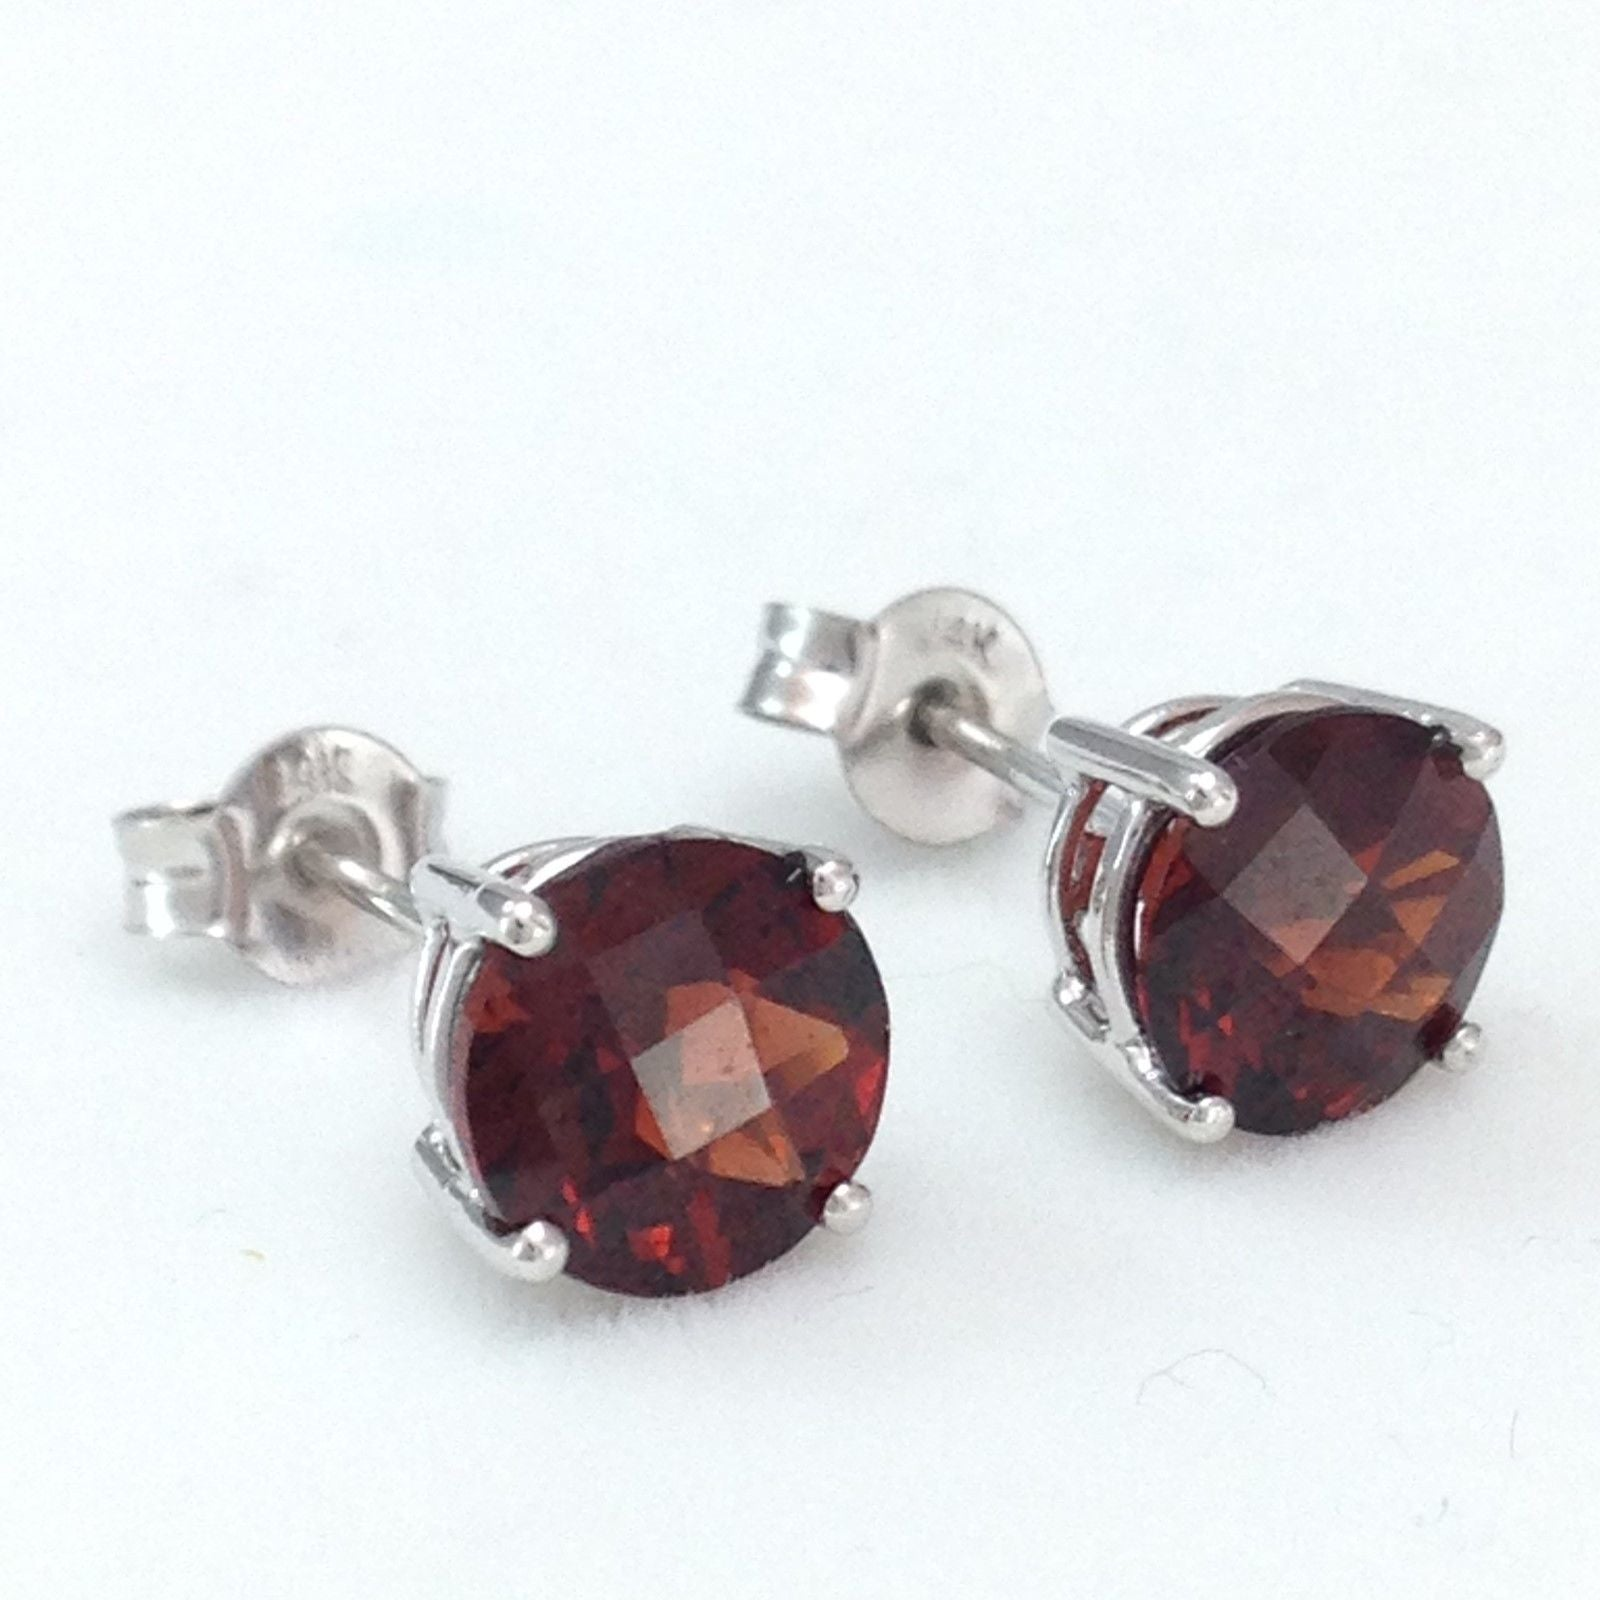 Genuine Garnet 3.1 cttw 7mm 14K white gold Earrings NWT $525